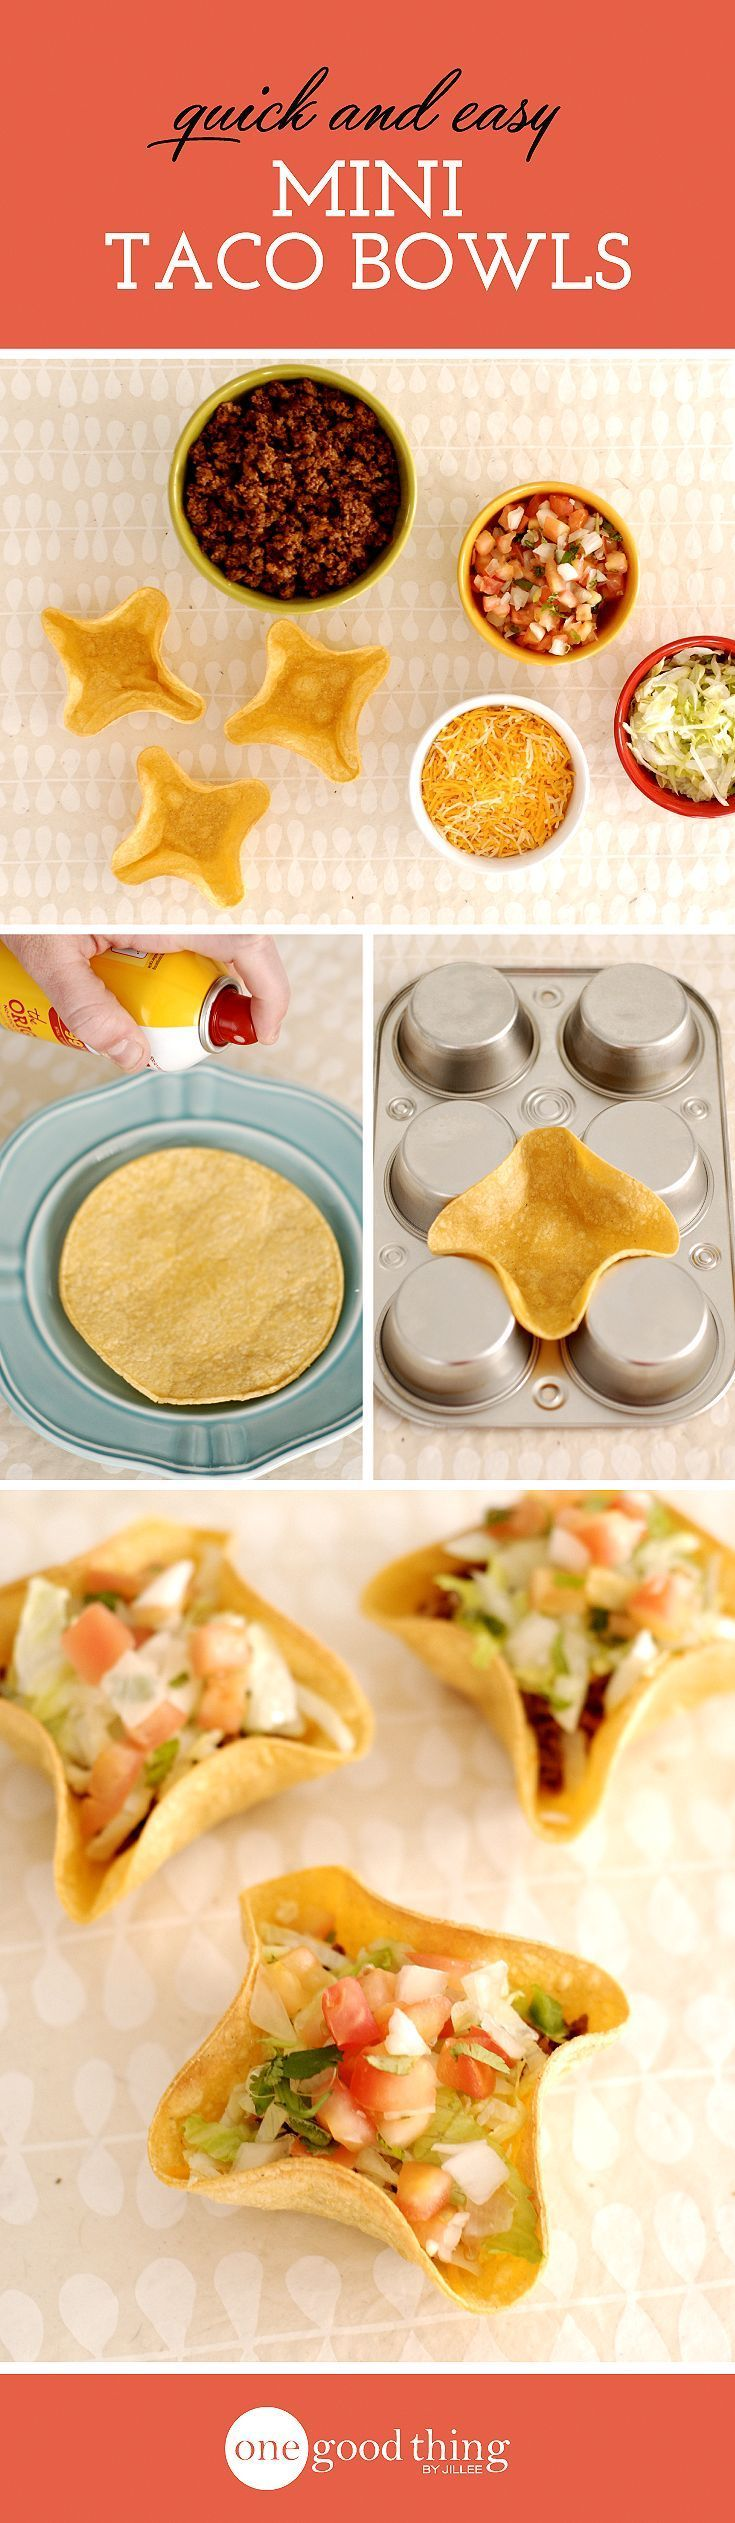 """Take """"Taco Tuesday"""" to a whole new level with these cute mini taco bowls you can easily make yourself using the underside of a muffin tin!"""